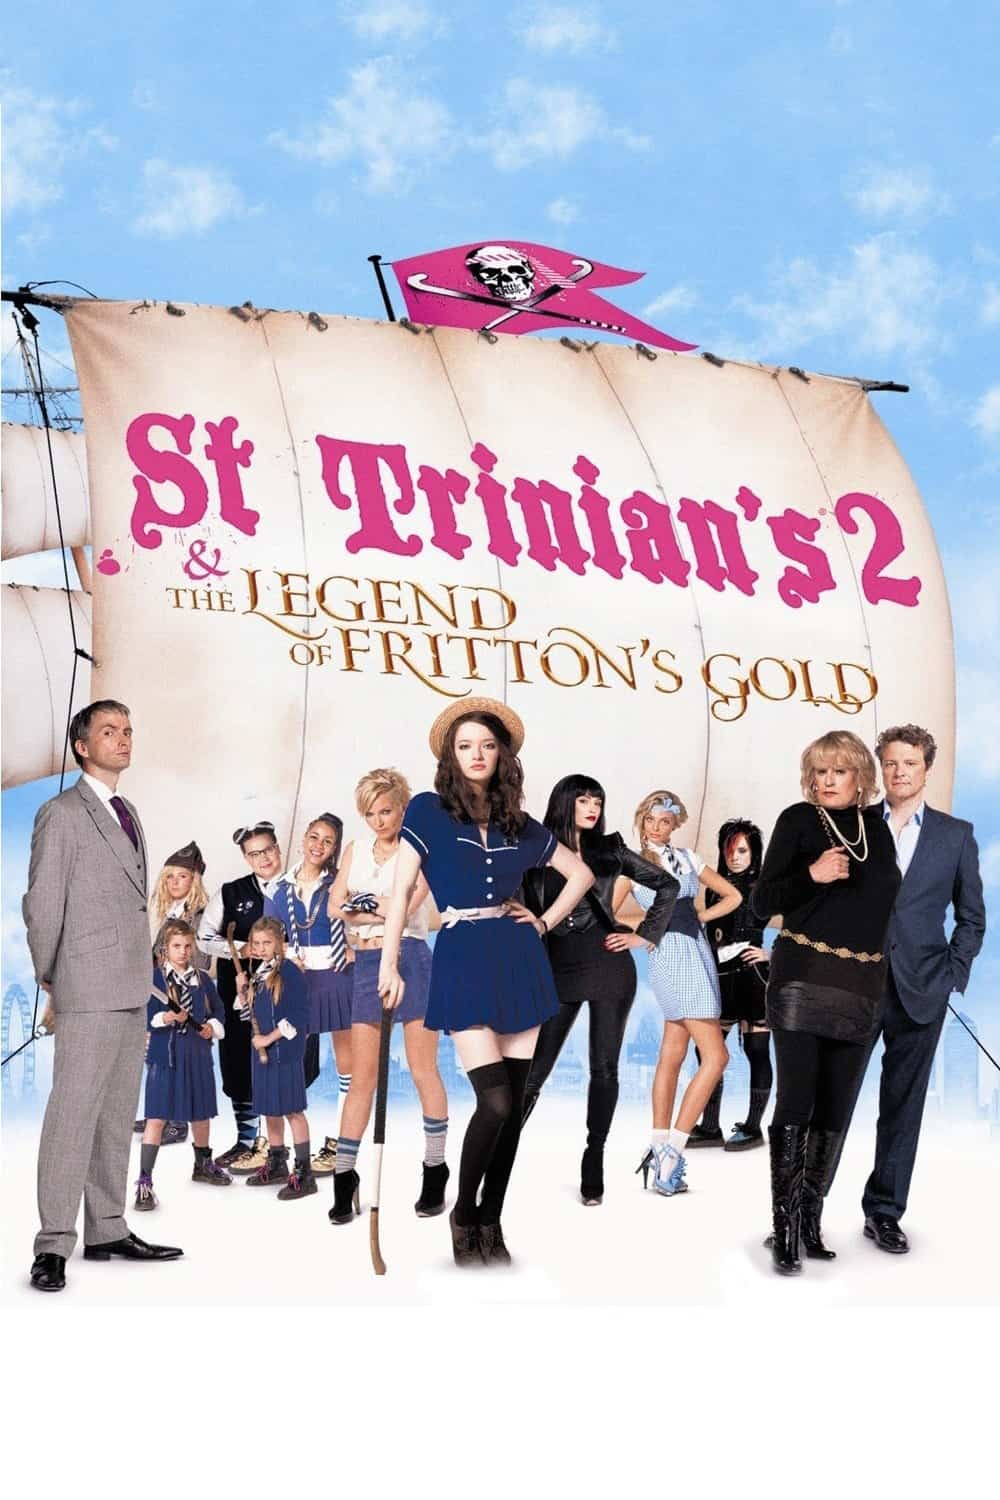 St Trinian's 2: The Legend of Fritton's Gold, 2009